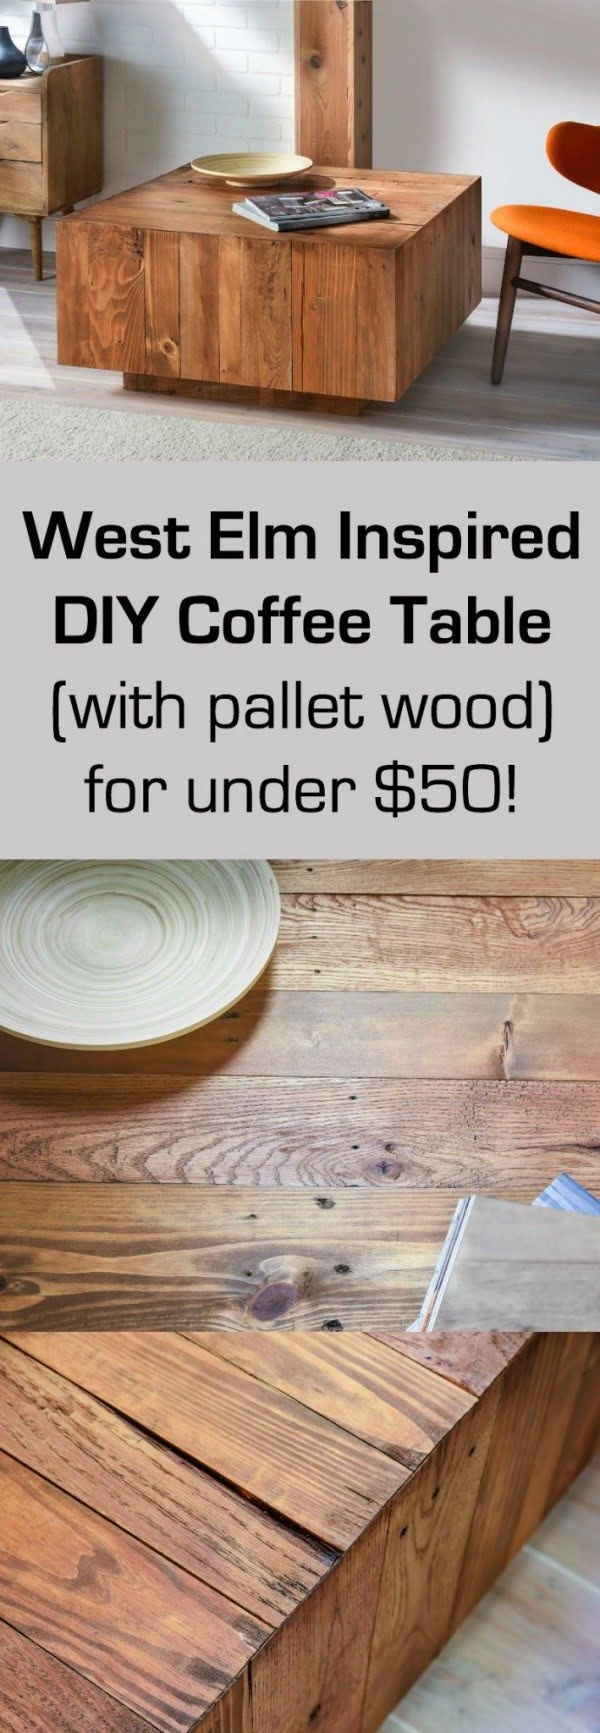 diy coffee table - 40 easy ideas you can make on a budget